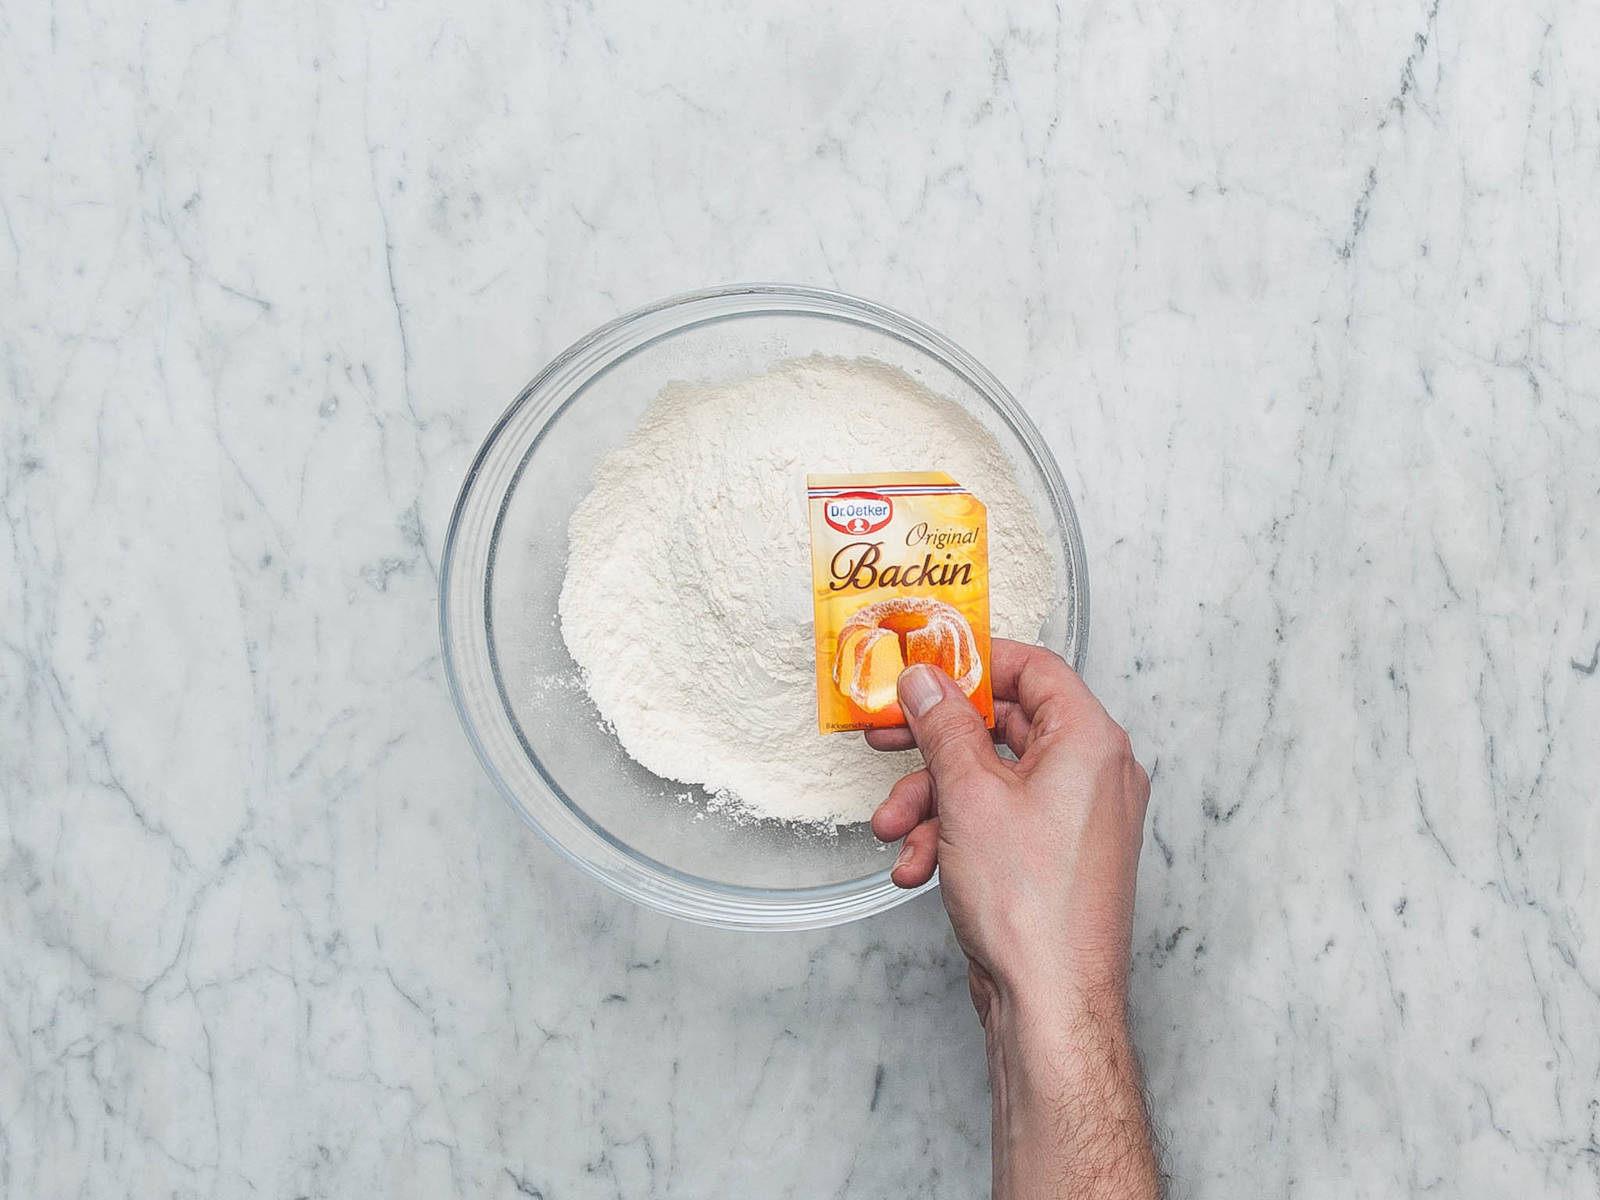 Preheat oven to 180°C/350°F. Grease and flour the cake pan. Line the bottom with parchment paper if it does not have a removable bottom. Zest and juice lemons and set zest aside. In a medium bowl, combine flour, baking powder, and salt. In a measuring cup, mix together milk and juice from half of the lemons.